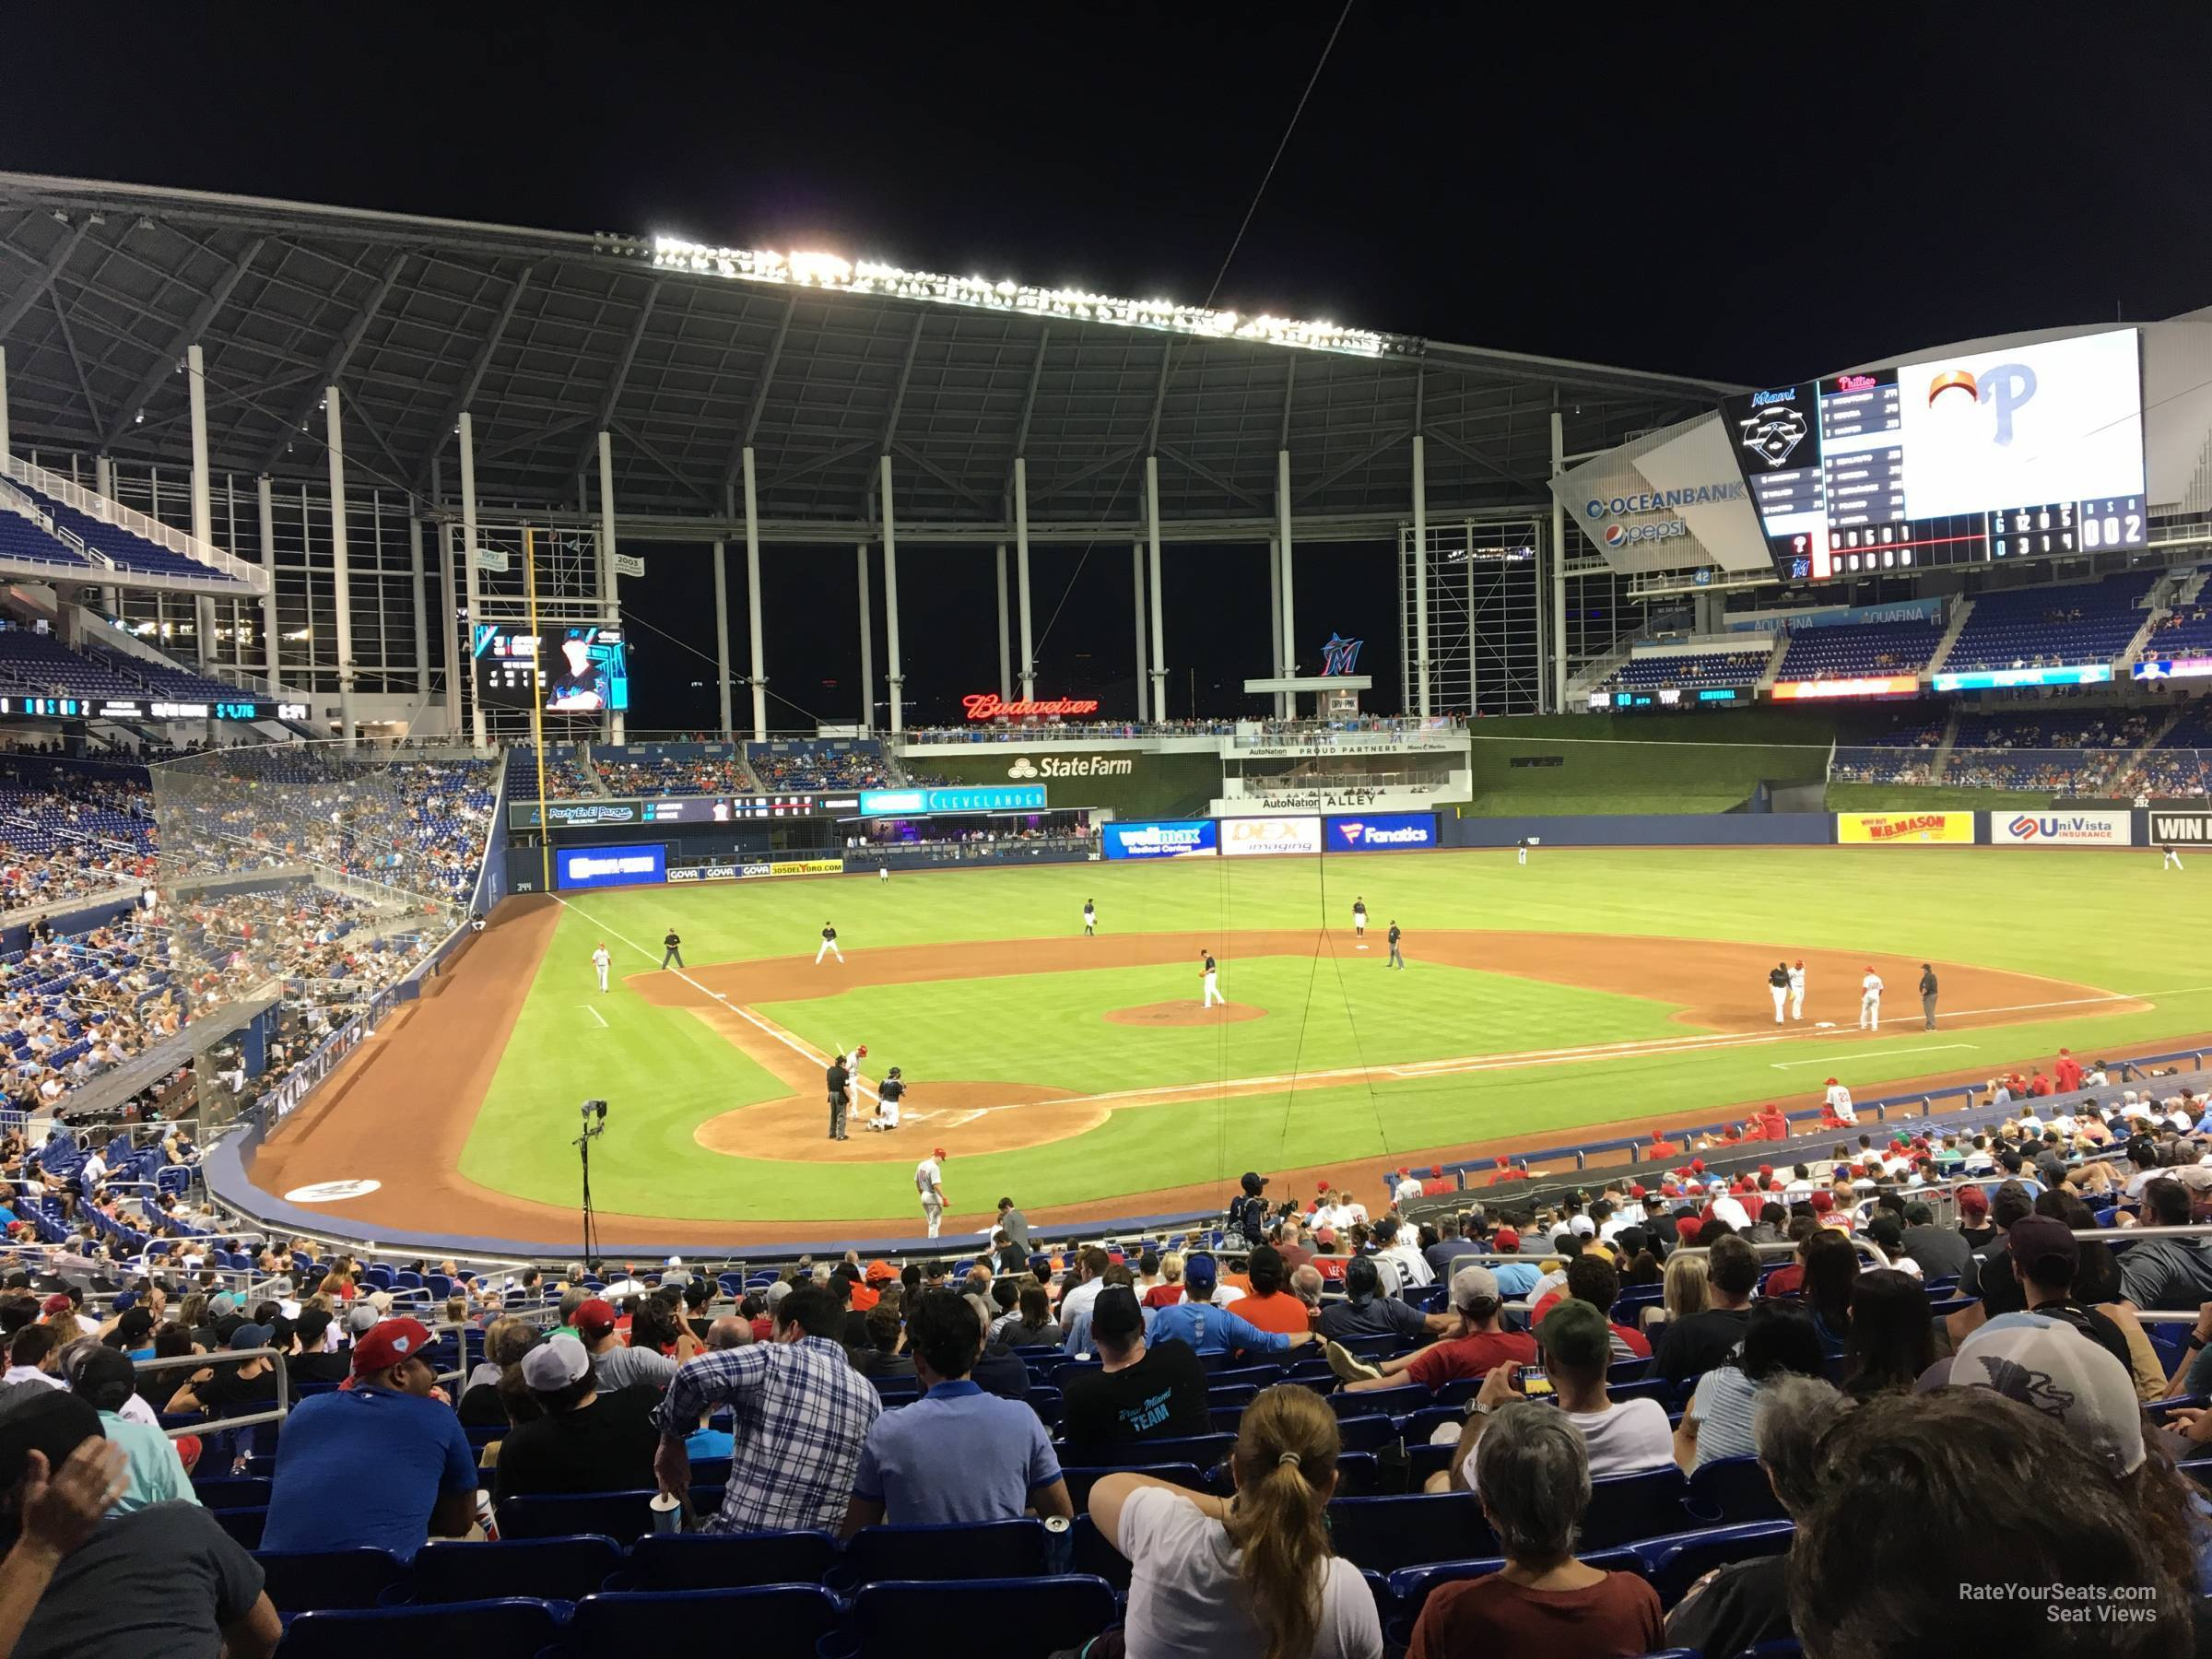 section 12 at loandepot park - miami marlins